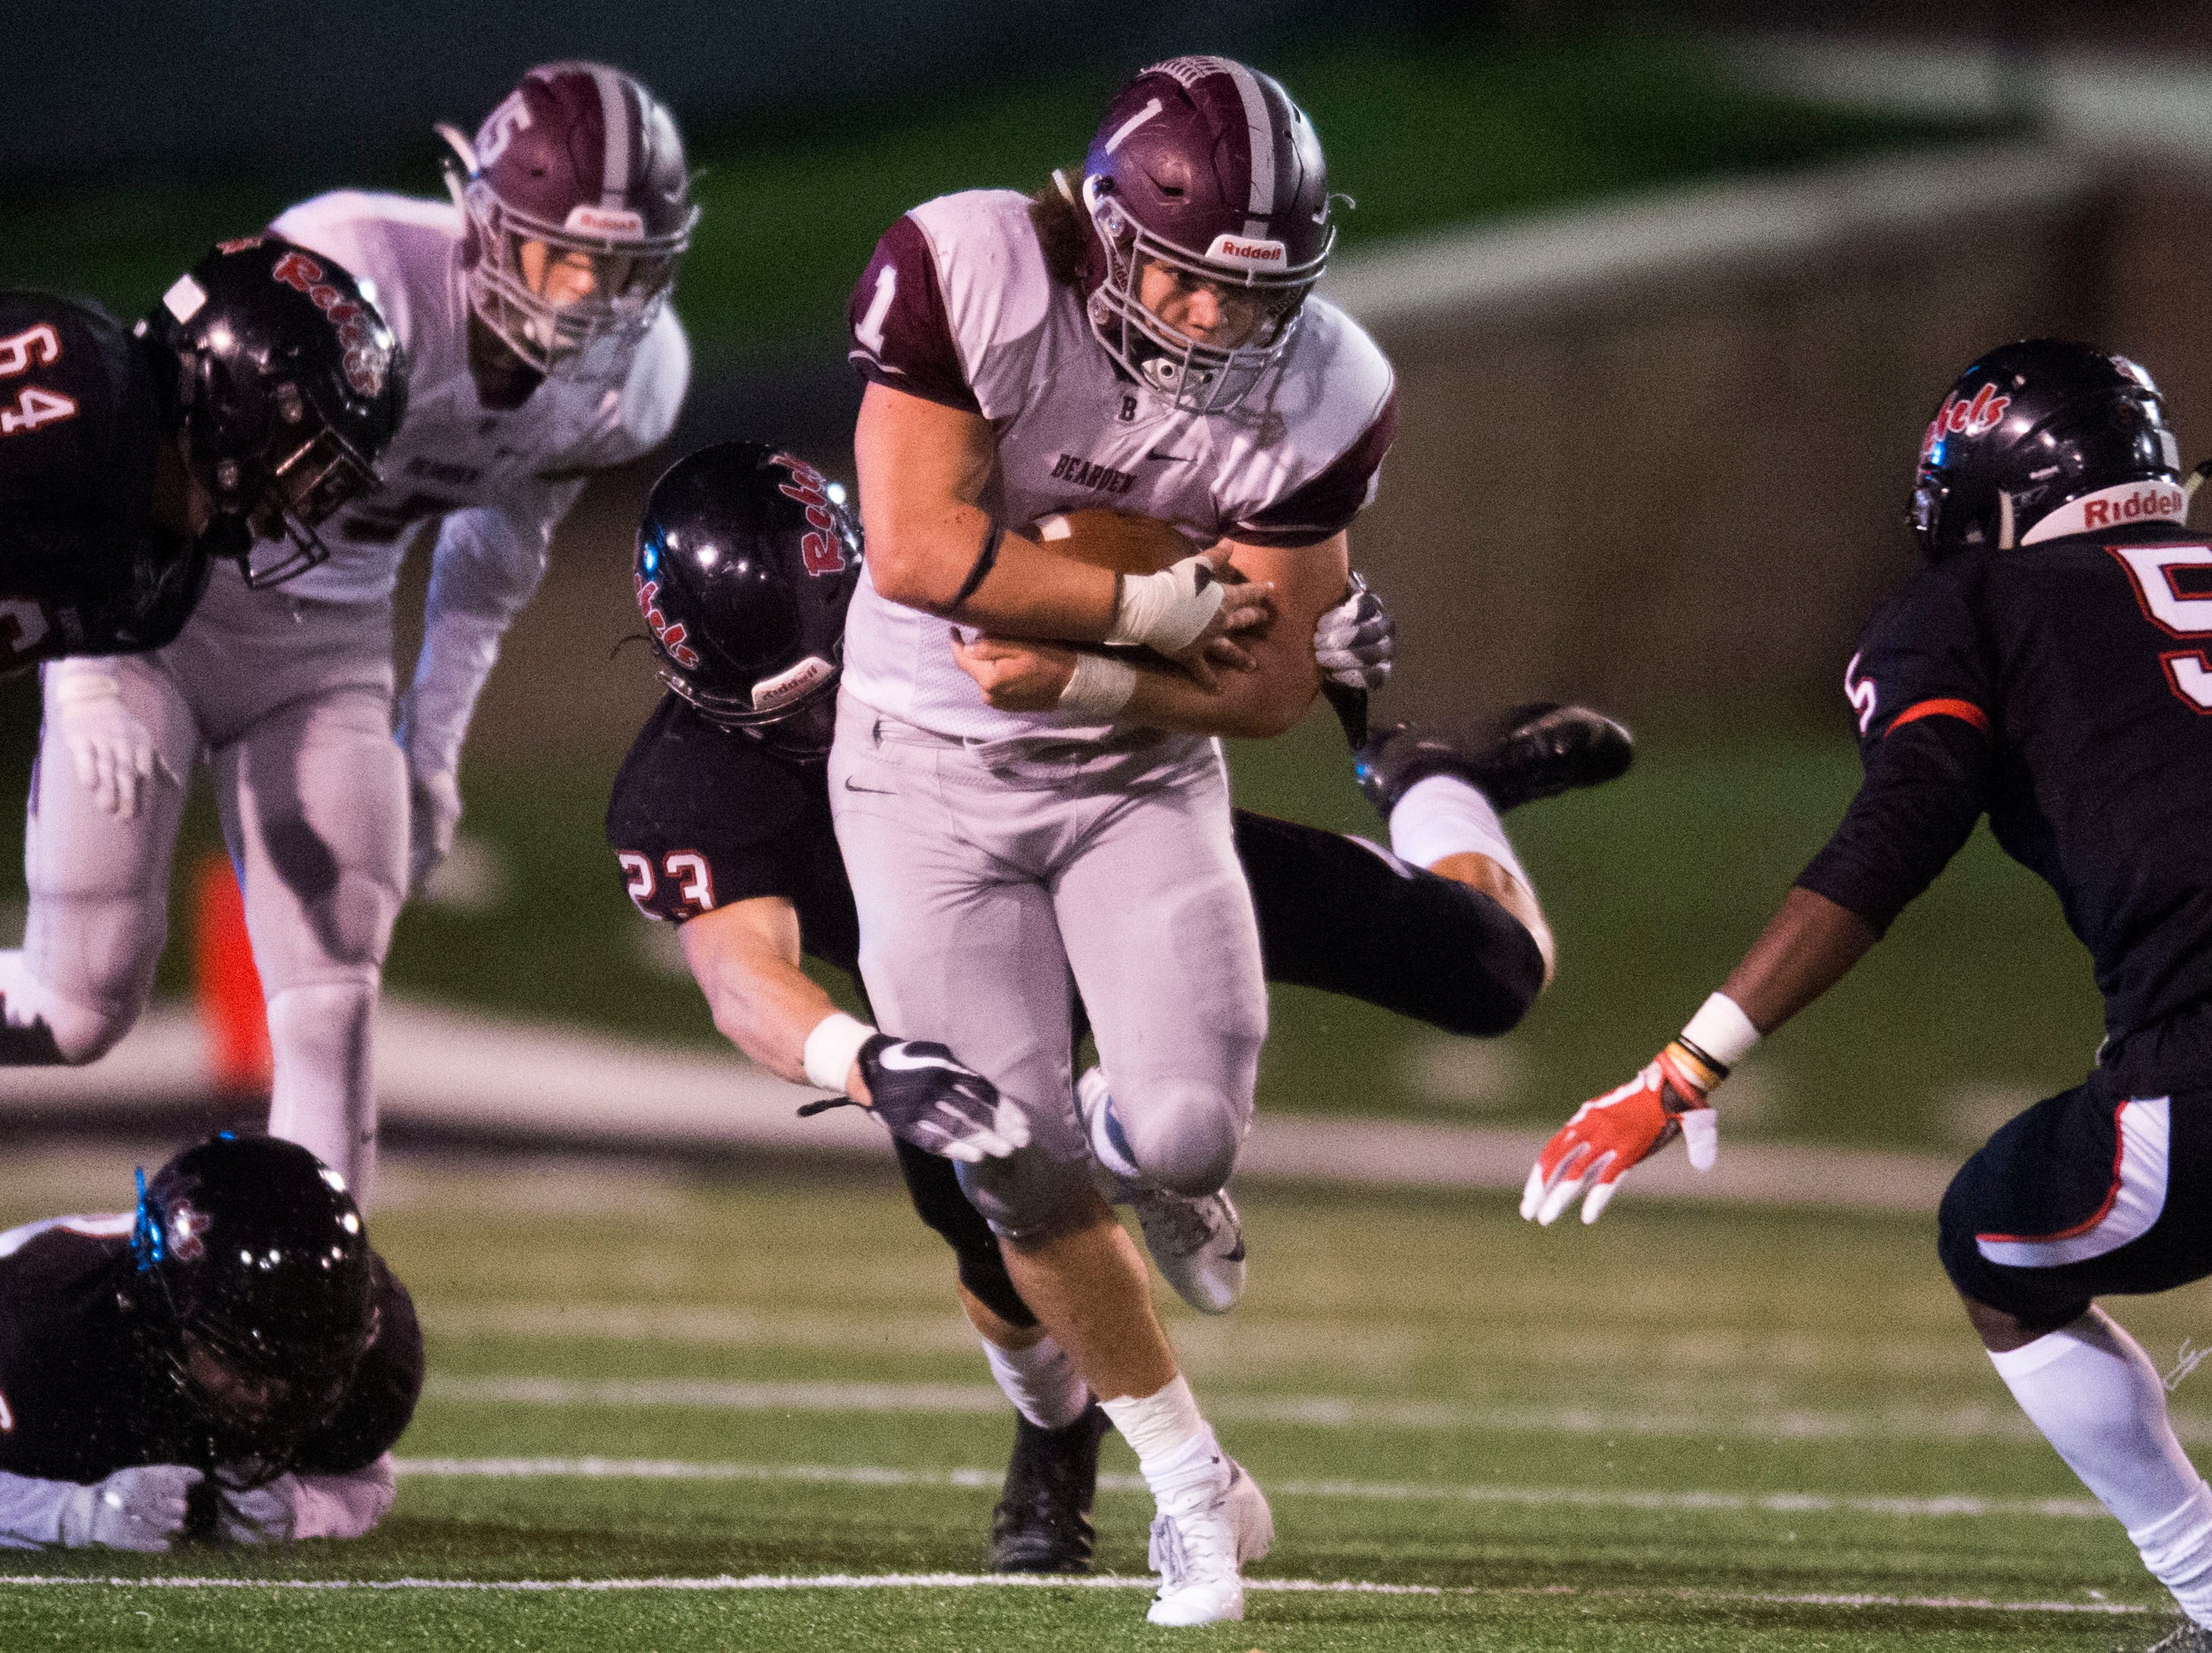 Bearden's Caleb Wilkins (1) runs the ball during a first round playoff game between Maryville and Bearden at Maryville, Friday, Nov. 2, 2018. Maryville defeated Bearden 28-7.